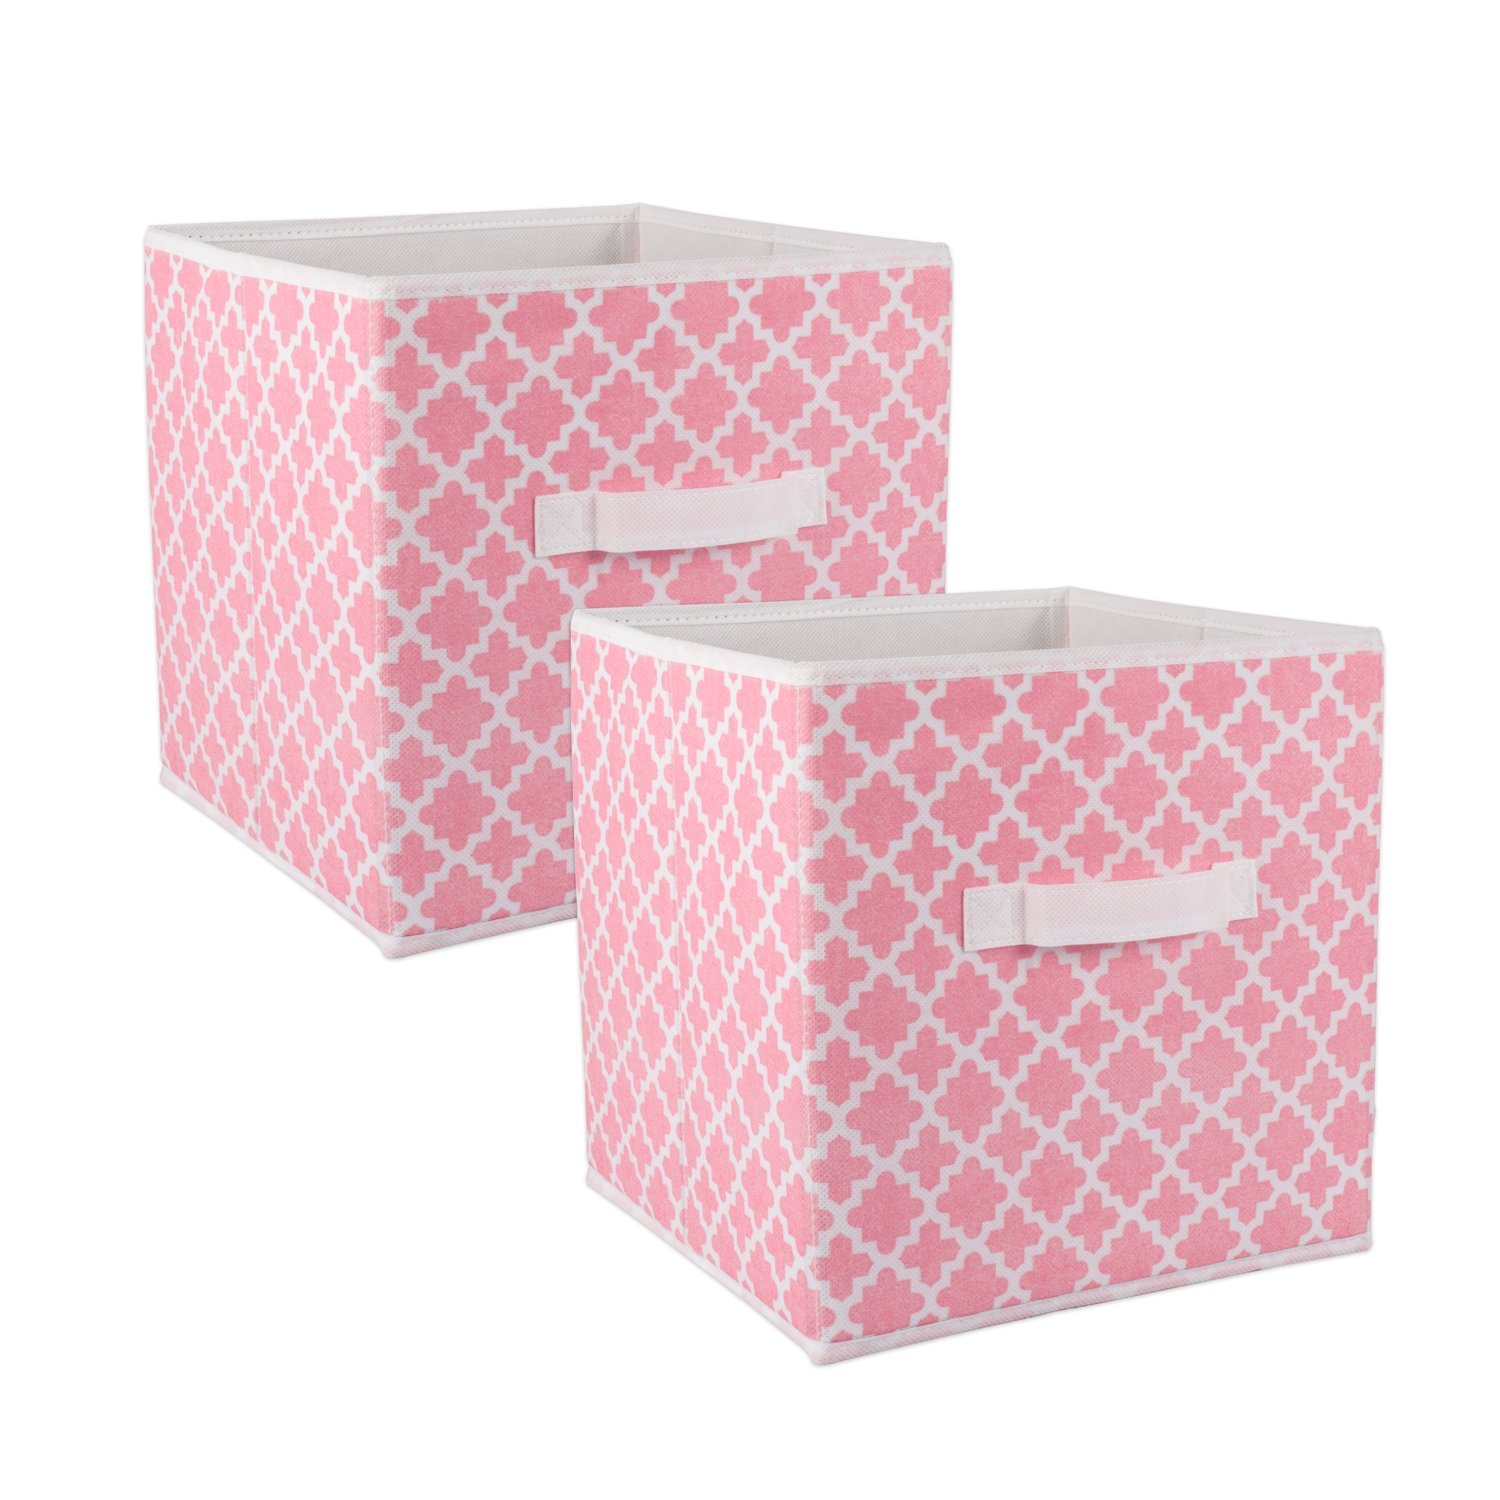 DII Fabric Storage Bins for Nursery, Offices, & Home Organization, Containers Are Made To Fit Standard Cube Organizers (11x11x11'') Lattice Pink Sorbet - Set of 2